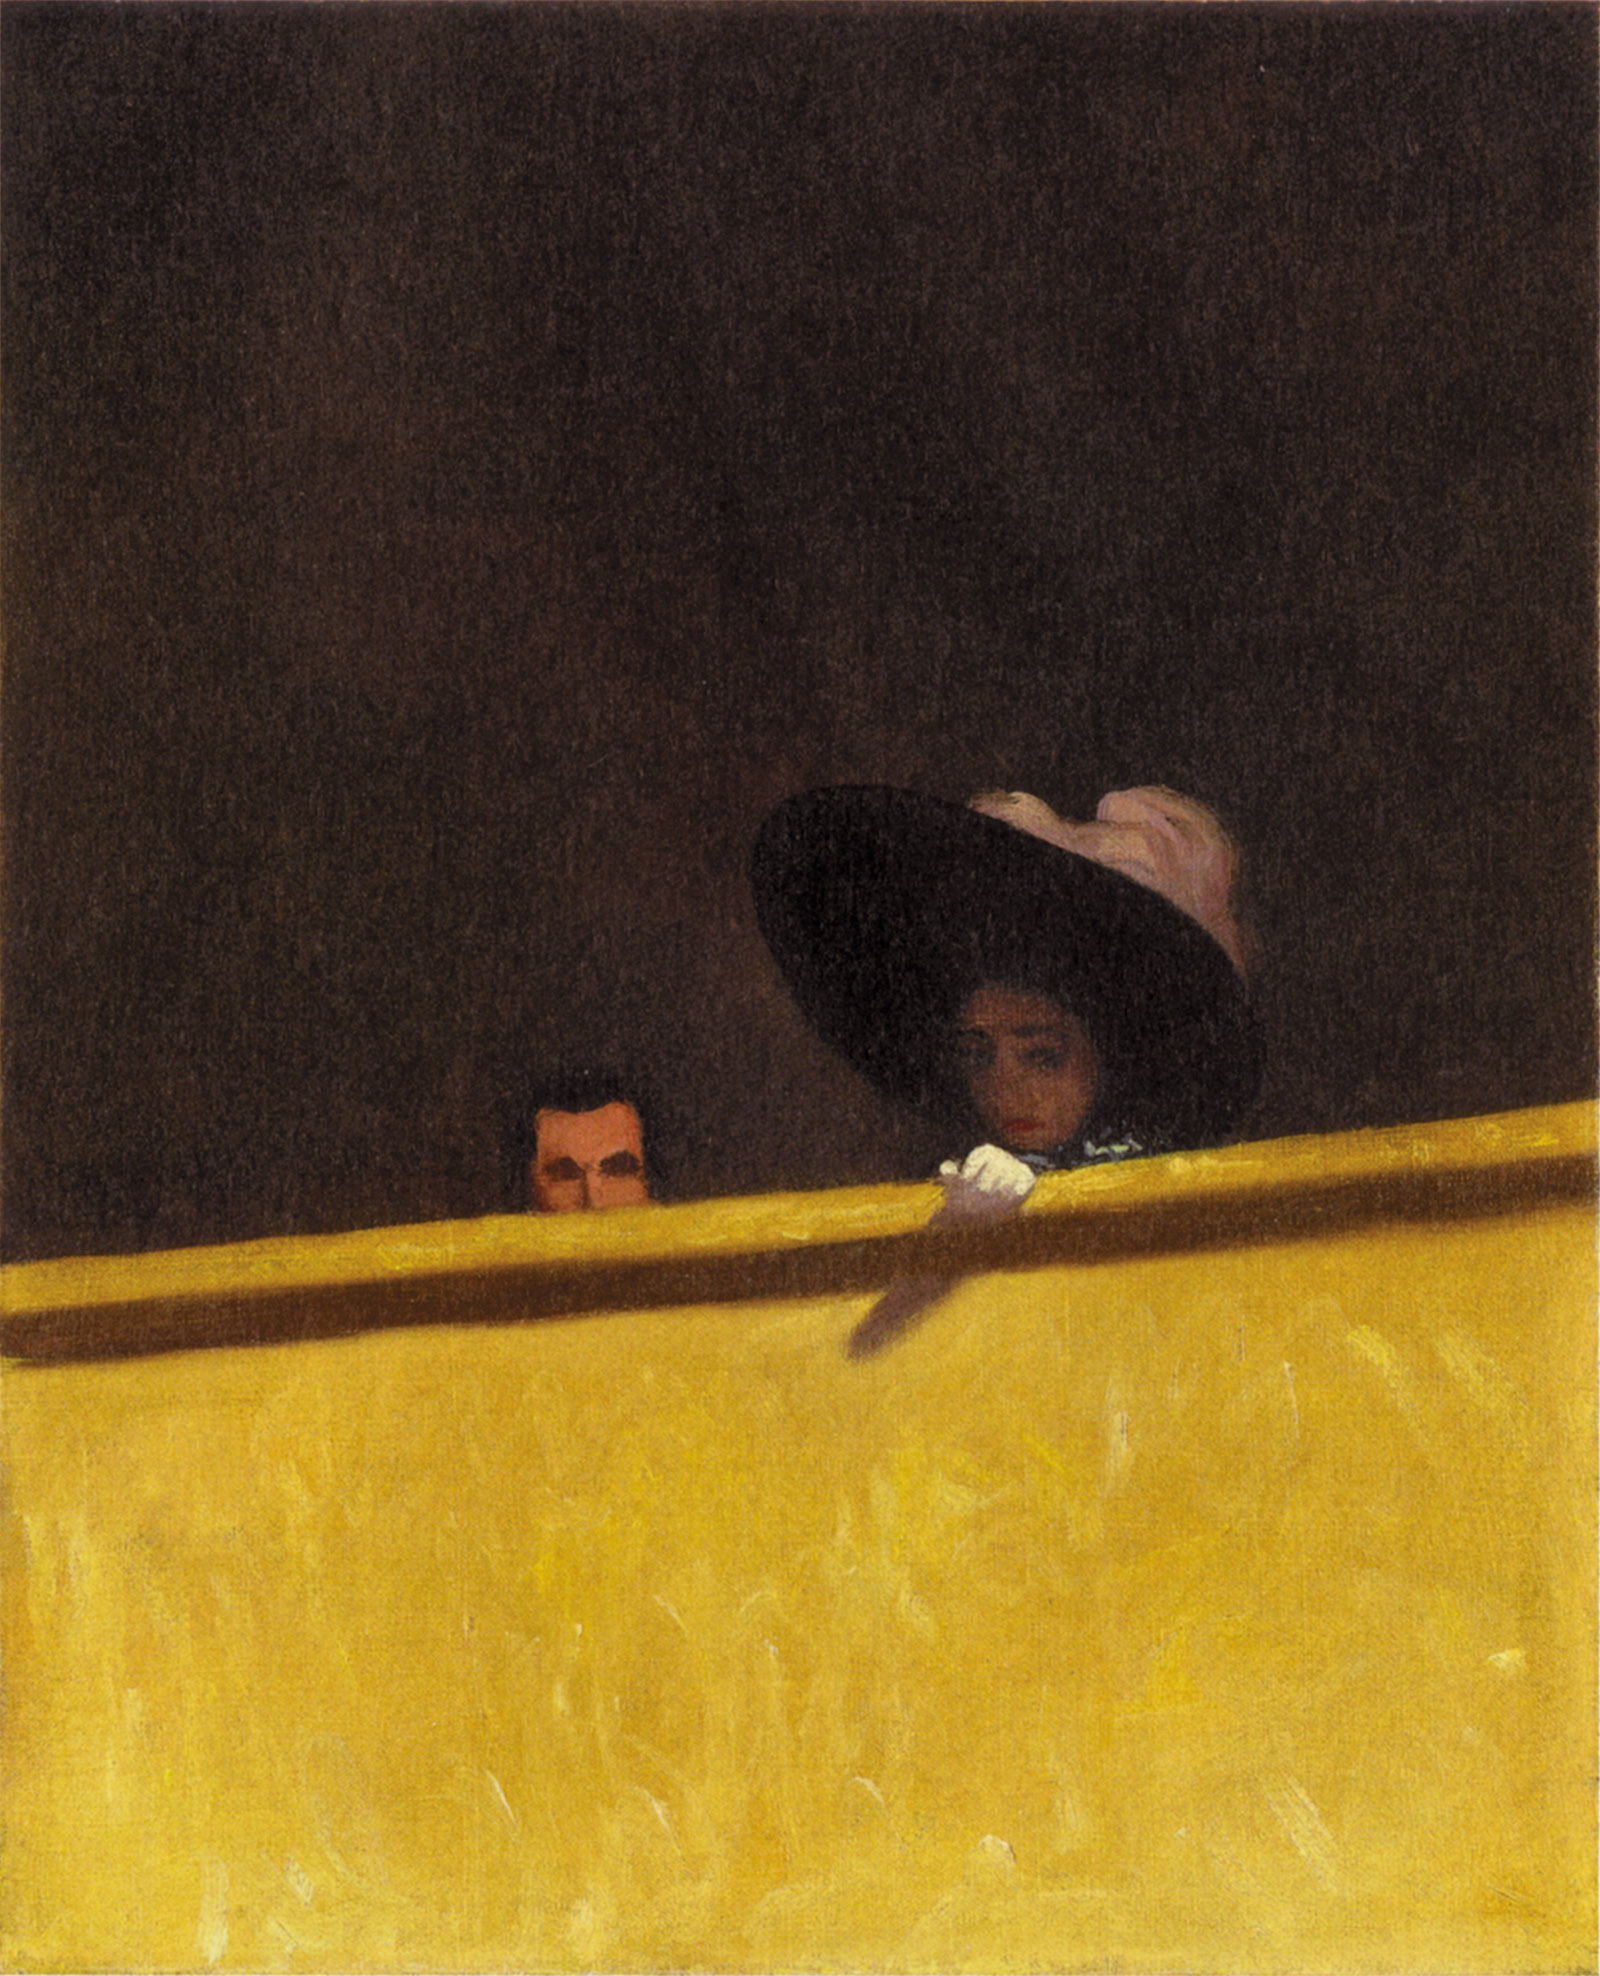 The Theatre Box by Félix Vallotton, 1909